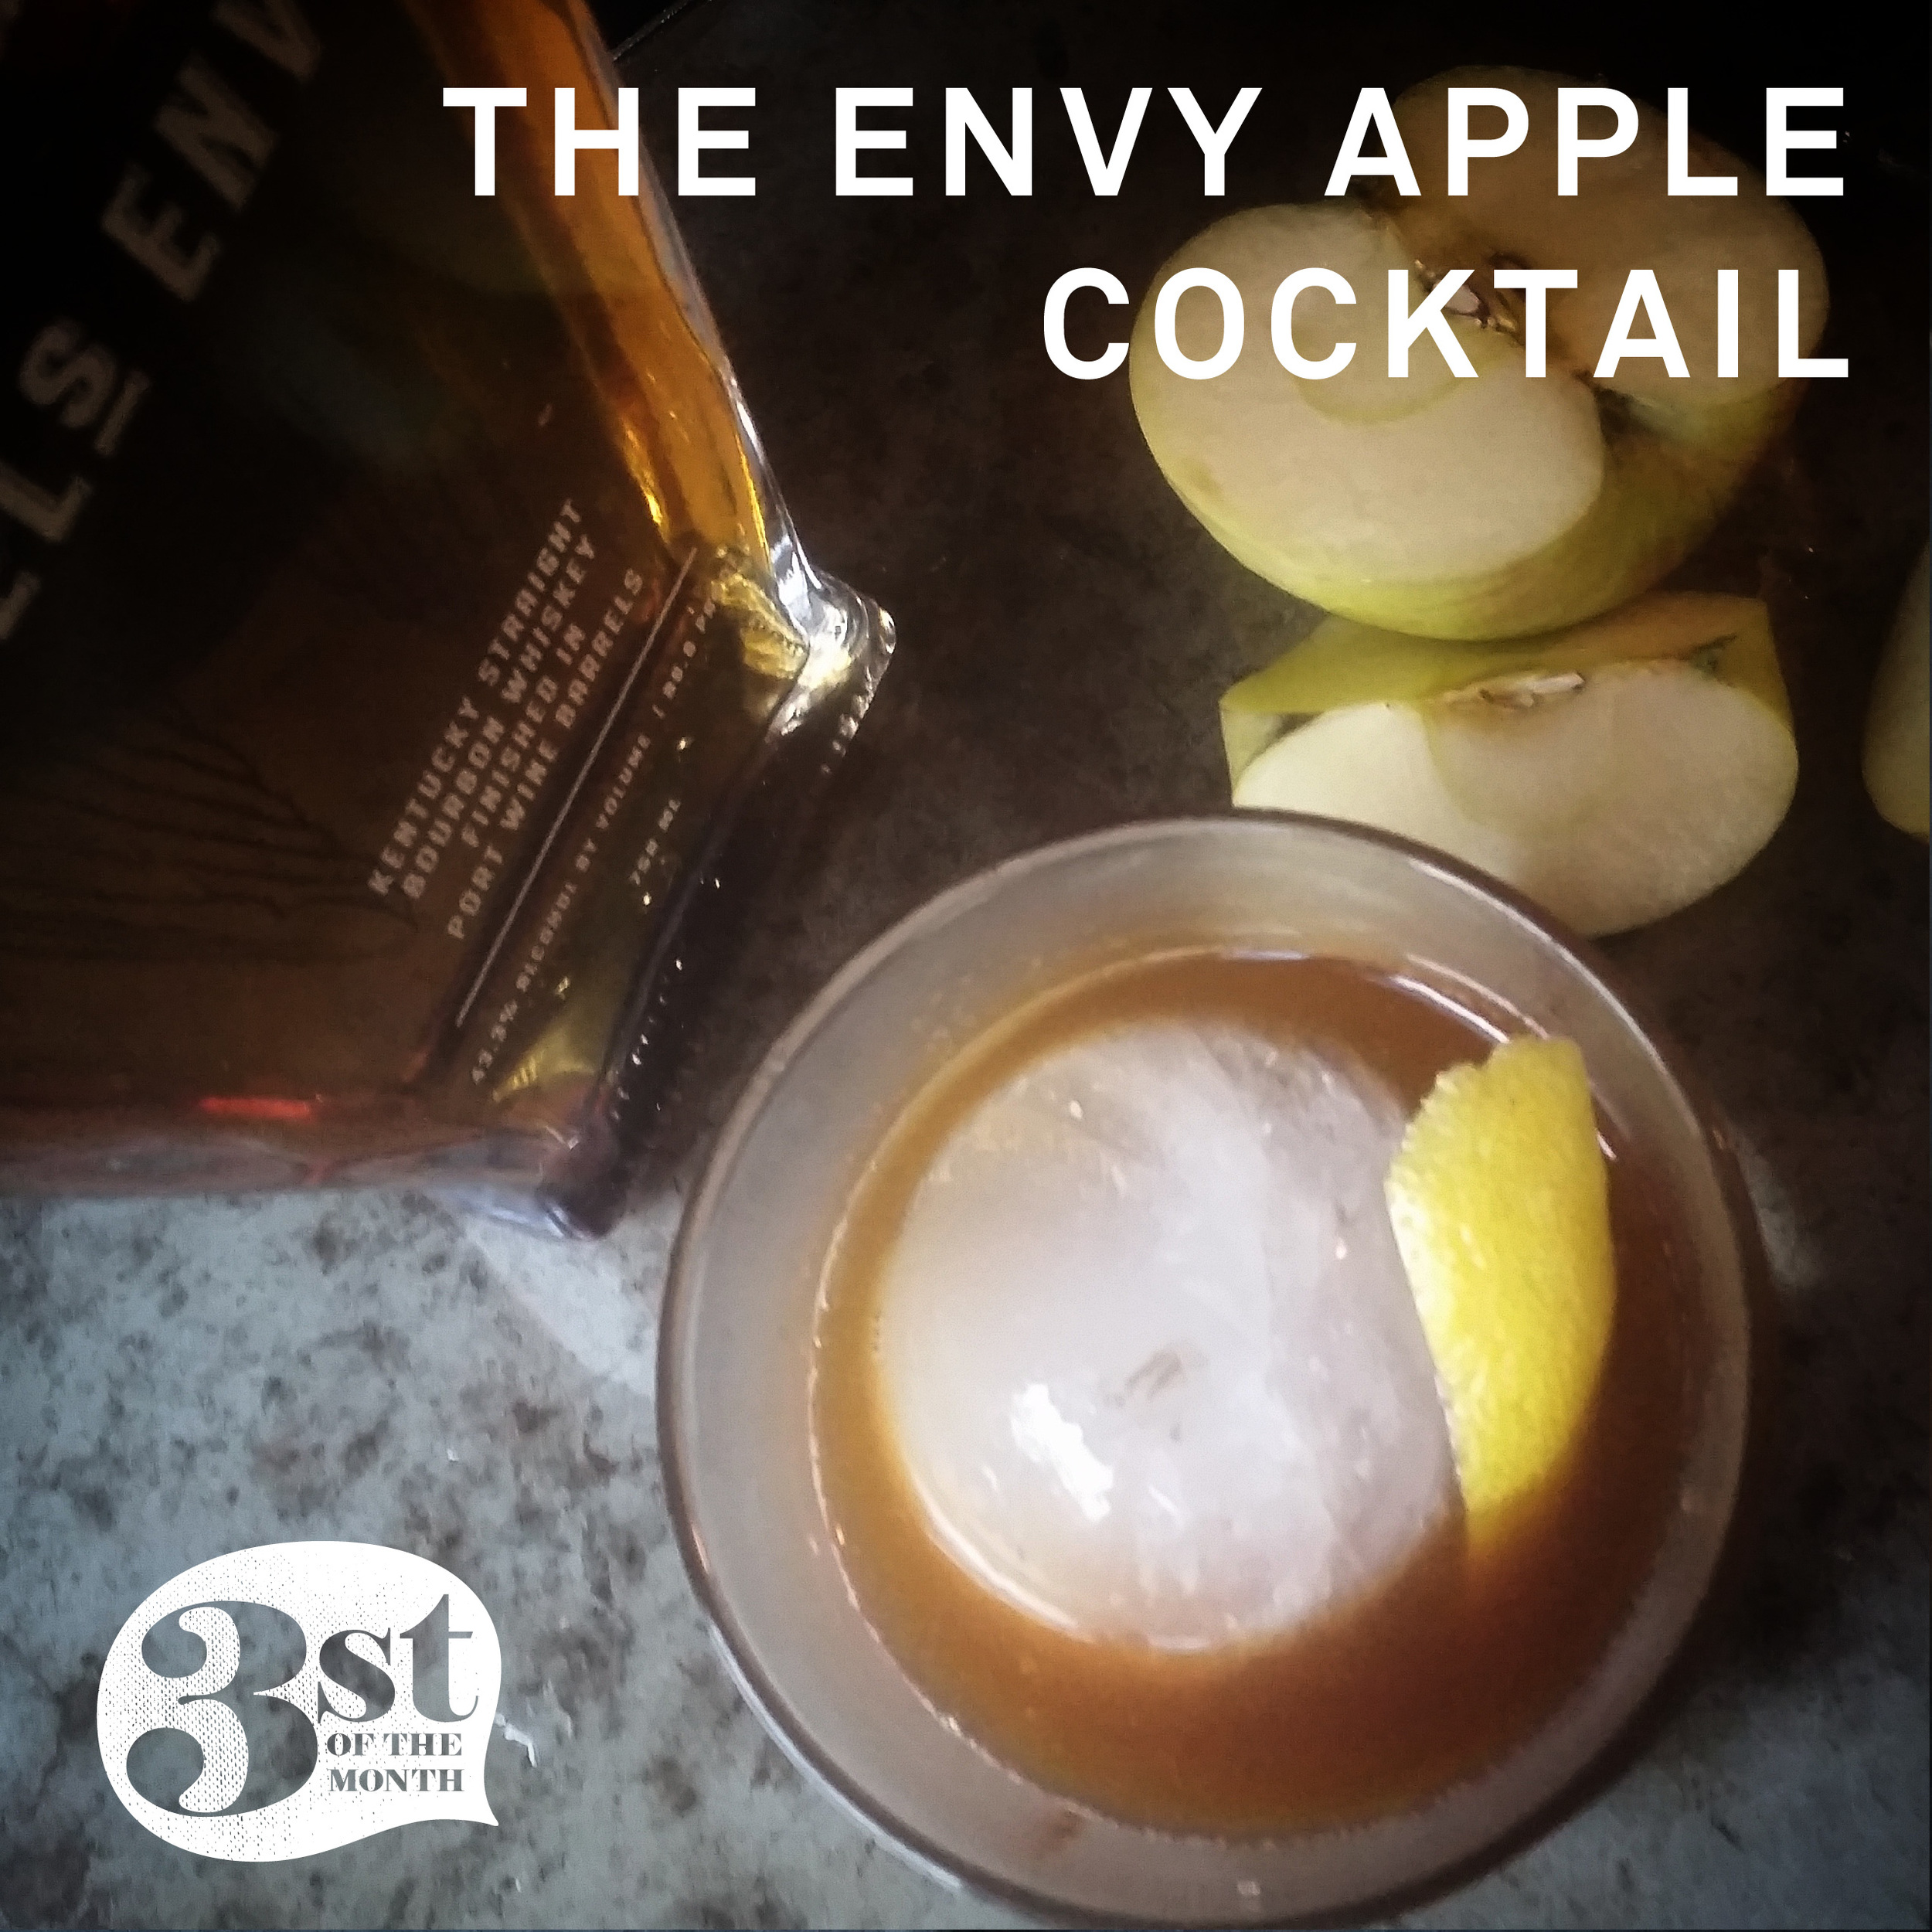 Made with homemade apple syrup, the Envy Apple Cocktail is a delicious end of summer cocktail!